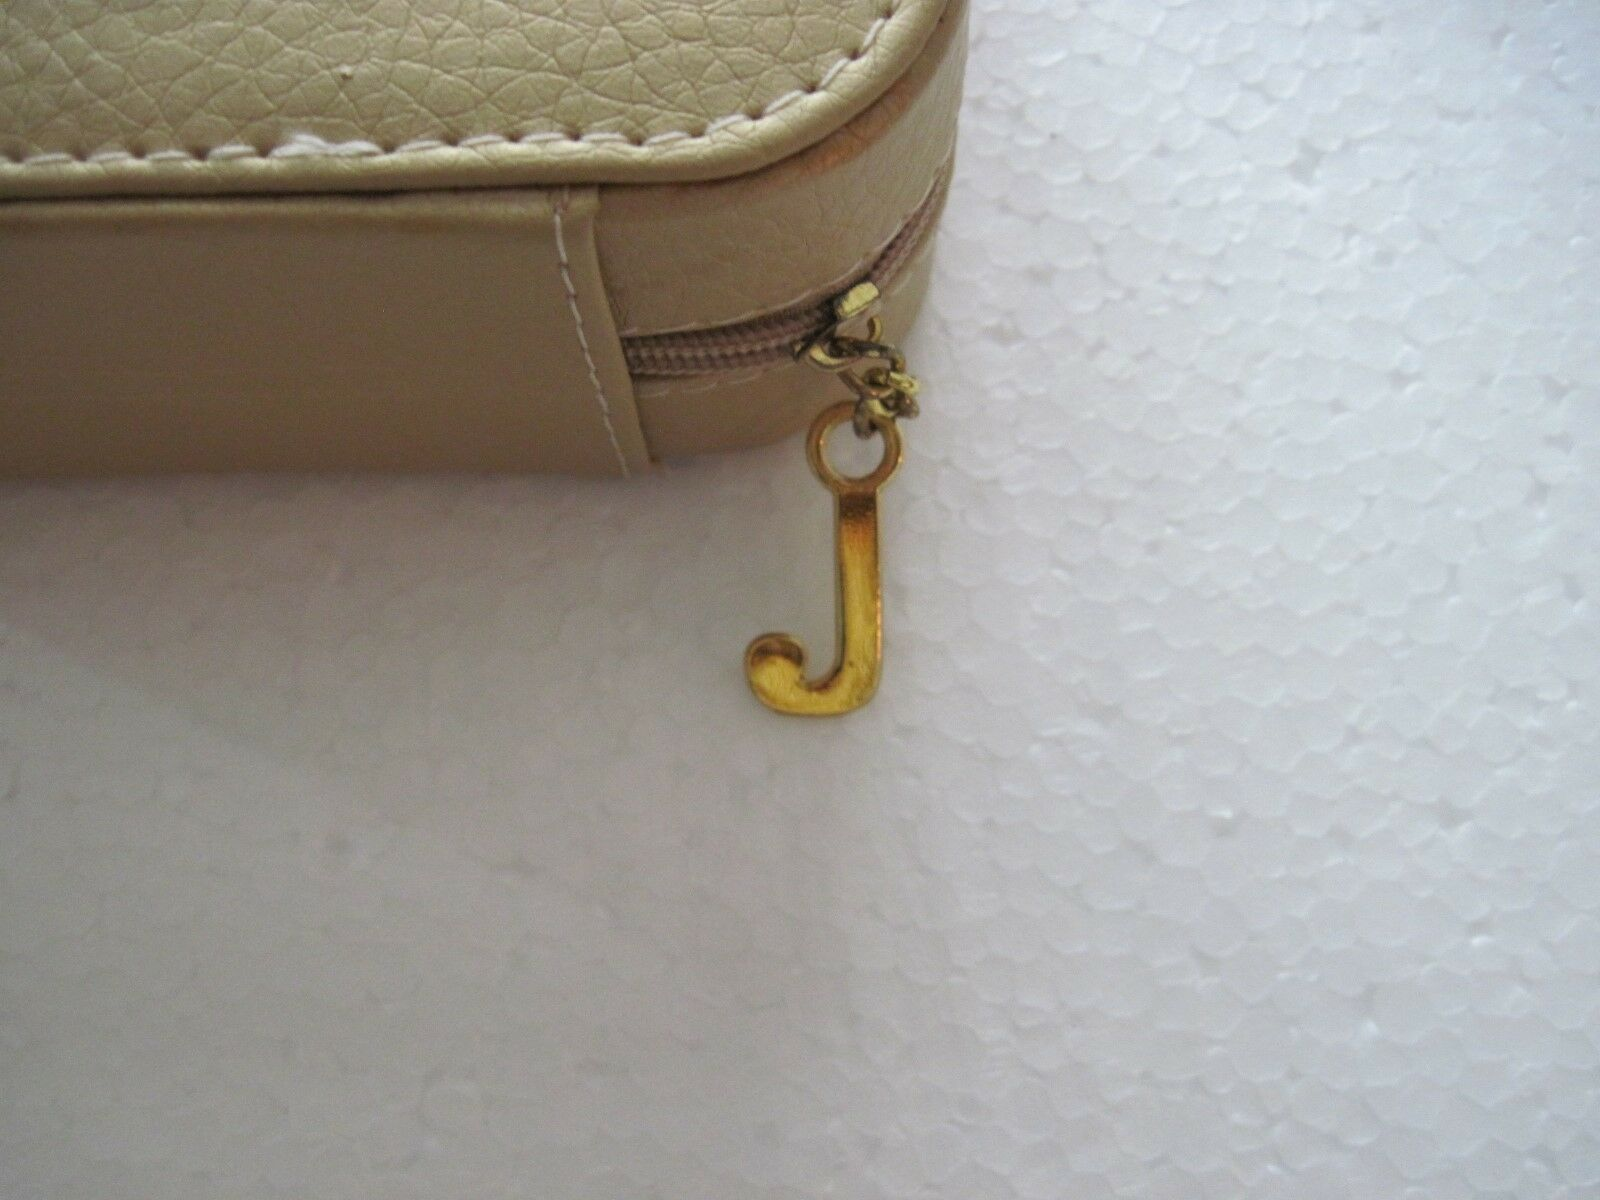 JUICY COUTURE Gold Colored Leatherette Travel Case, Zip Around, 5 1/4 X 4 1/4  - $11.50